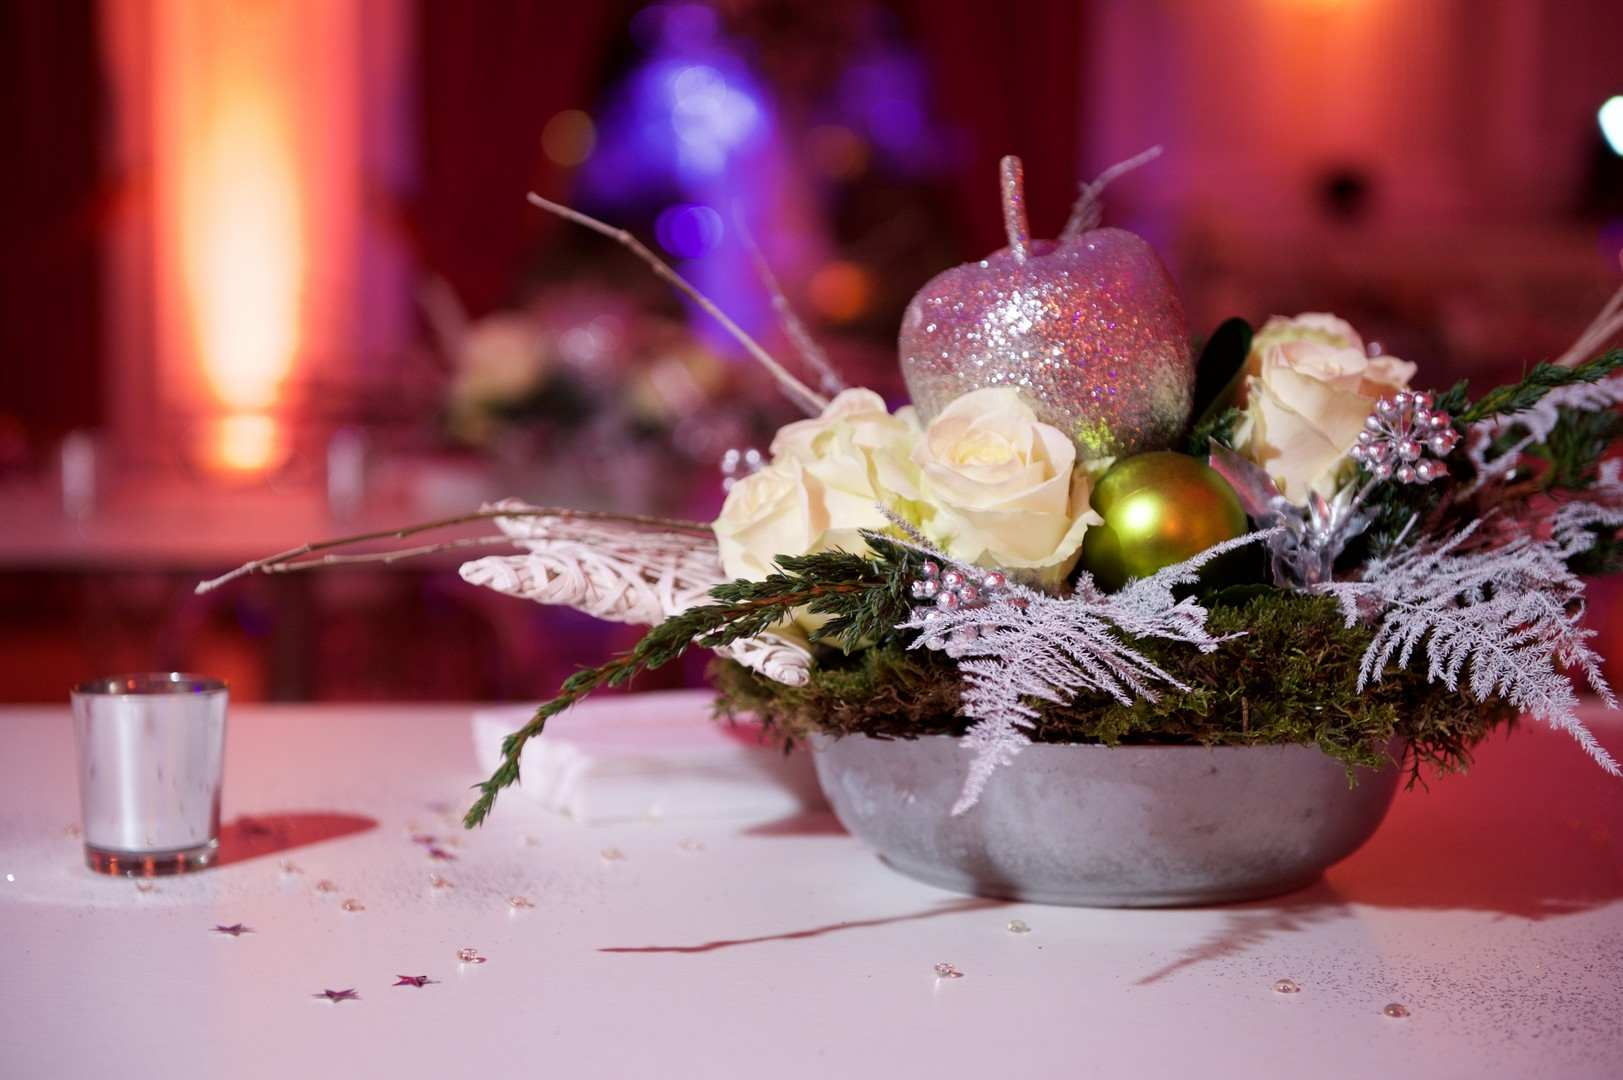 xmas-party-loyens-loeff-2014-event-luxembourg